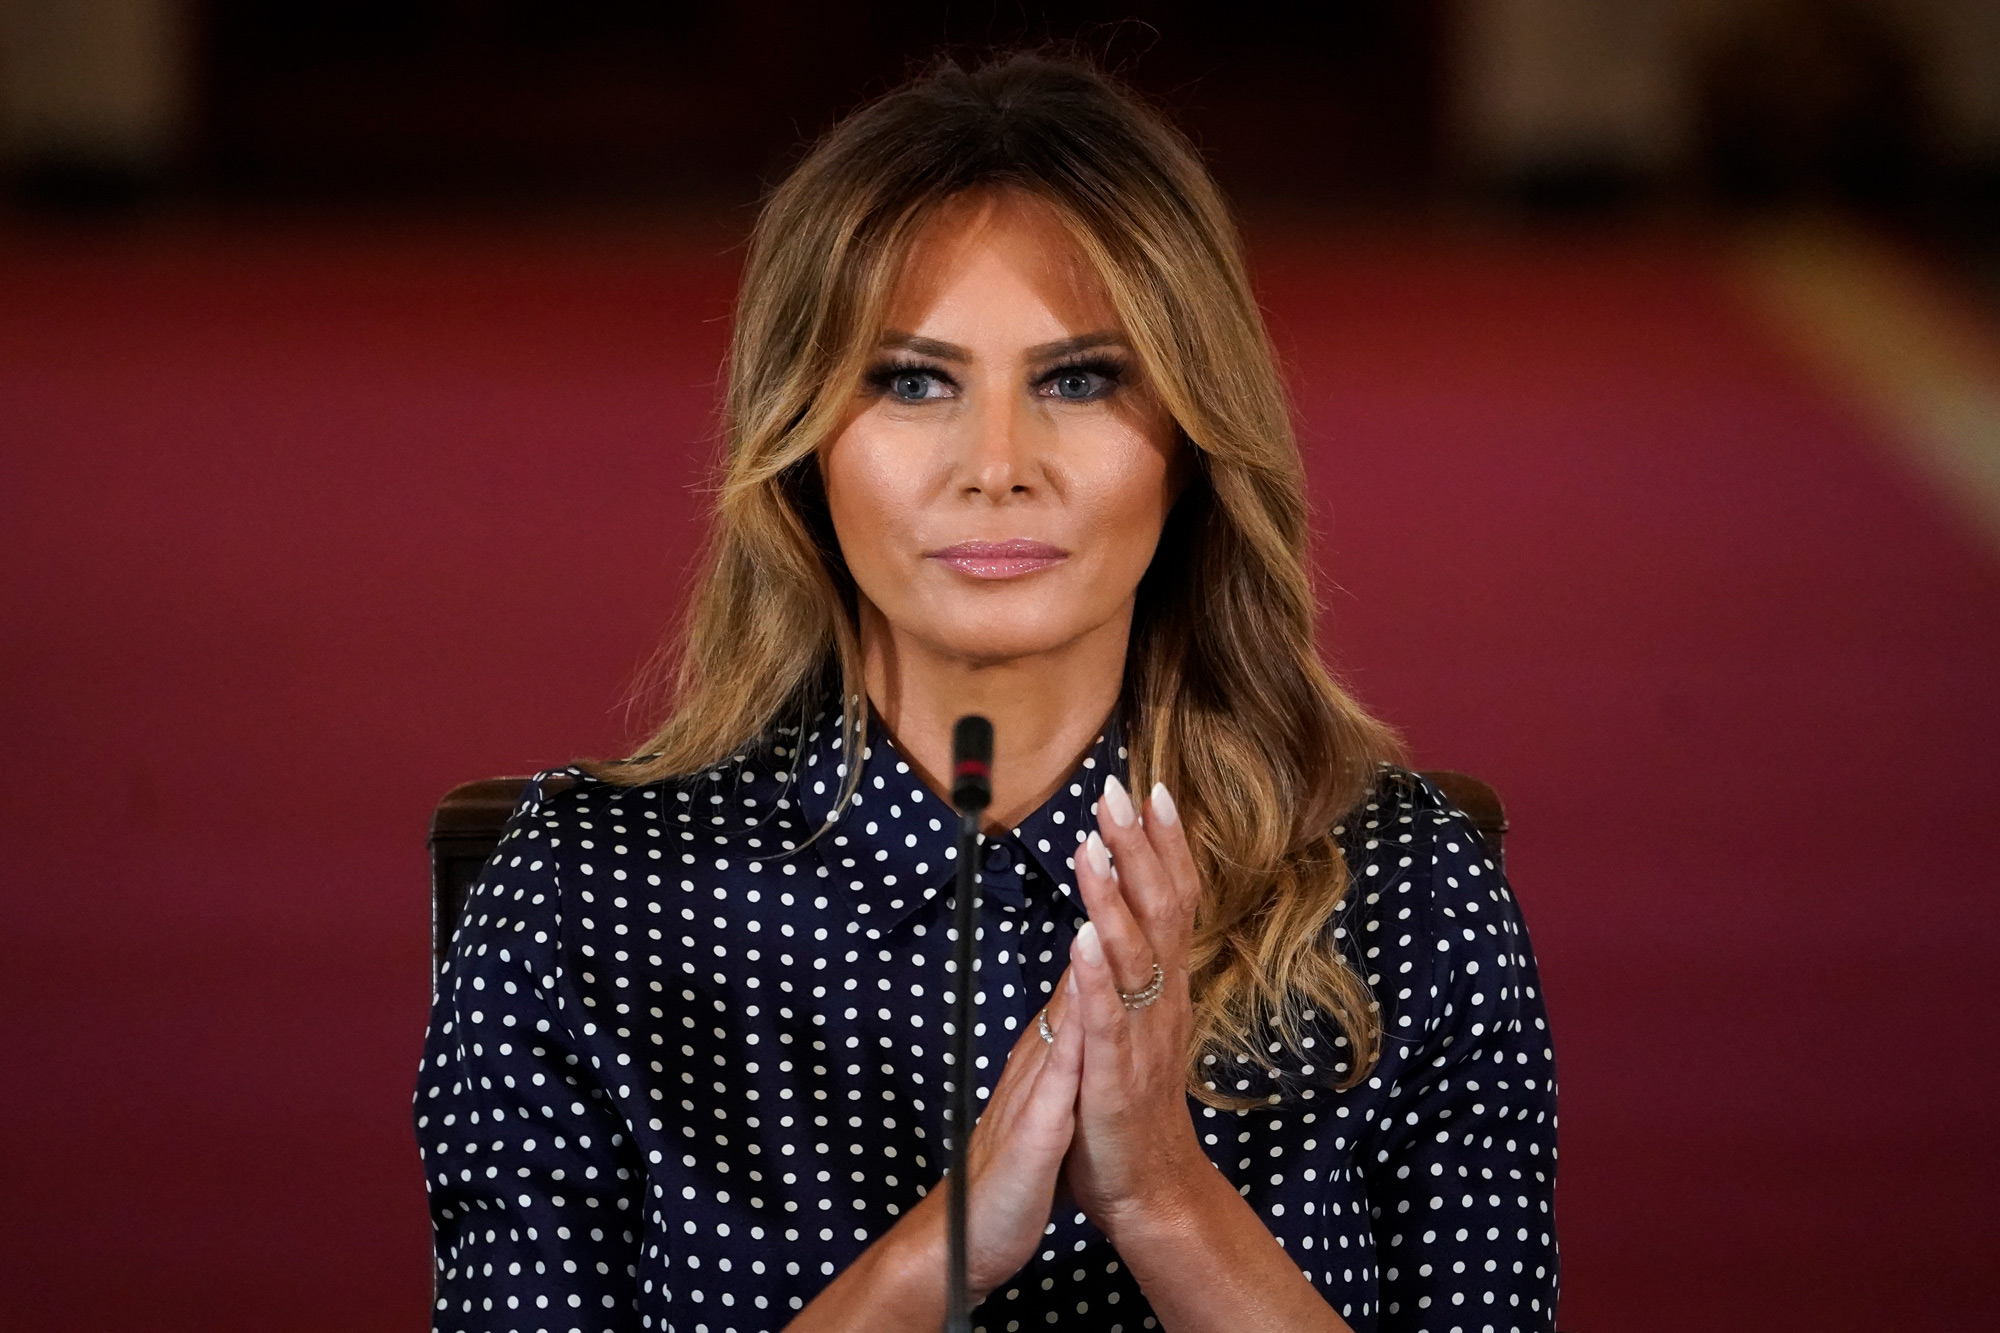 First Lady Melania Trump attends an event to mark National Alcohol and Drug Addiction Recovery Month in the East Room of the White House on September 3 in Washington, DC.